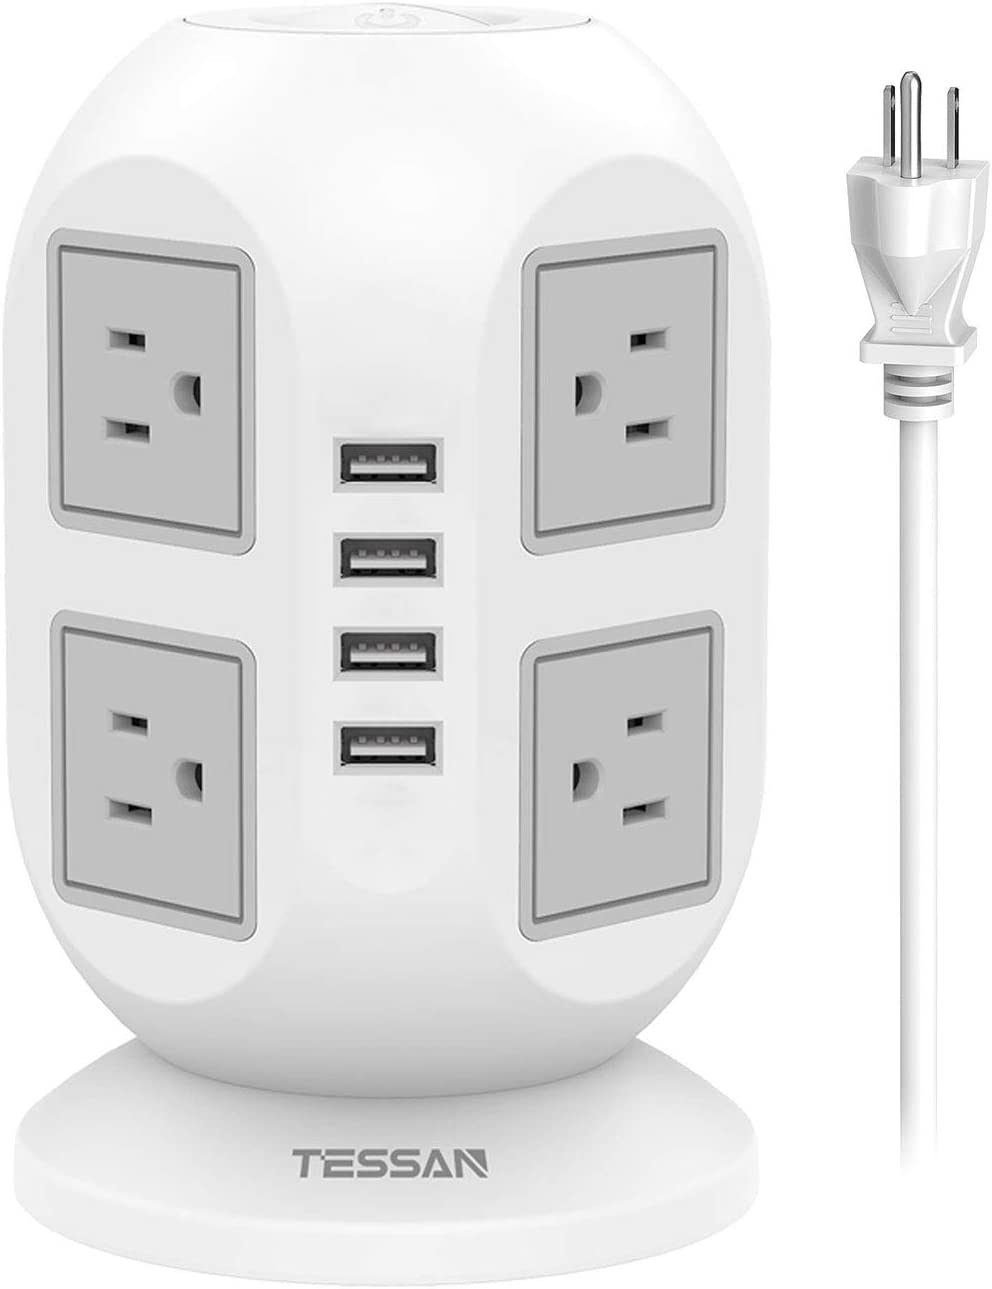 Power Strip Tower TESSAN Surge Protector 8 AC Outlets 4 USB Ports, Long Extension Cord 15ft, Charging Station Power Strip Extension Cord Multiple Outlets for Home, Office, Dorm Room Essentials